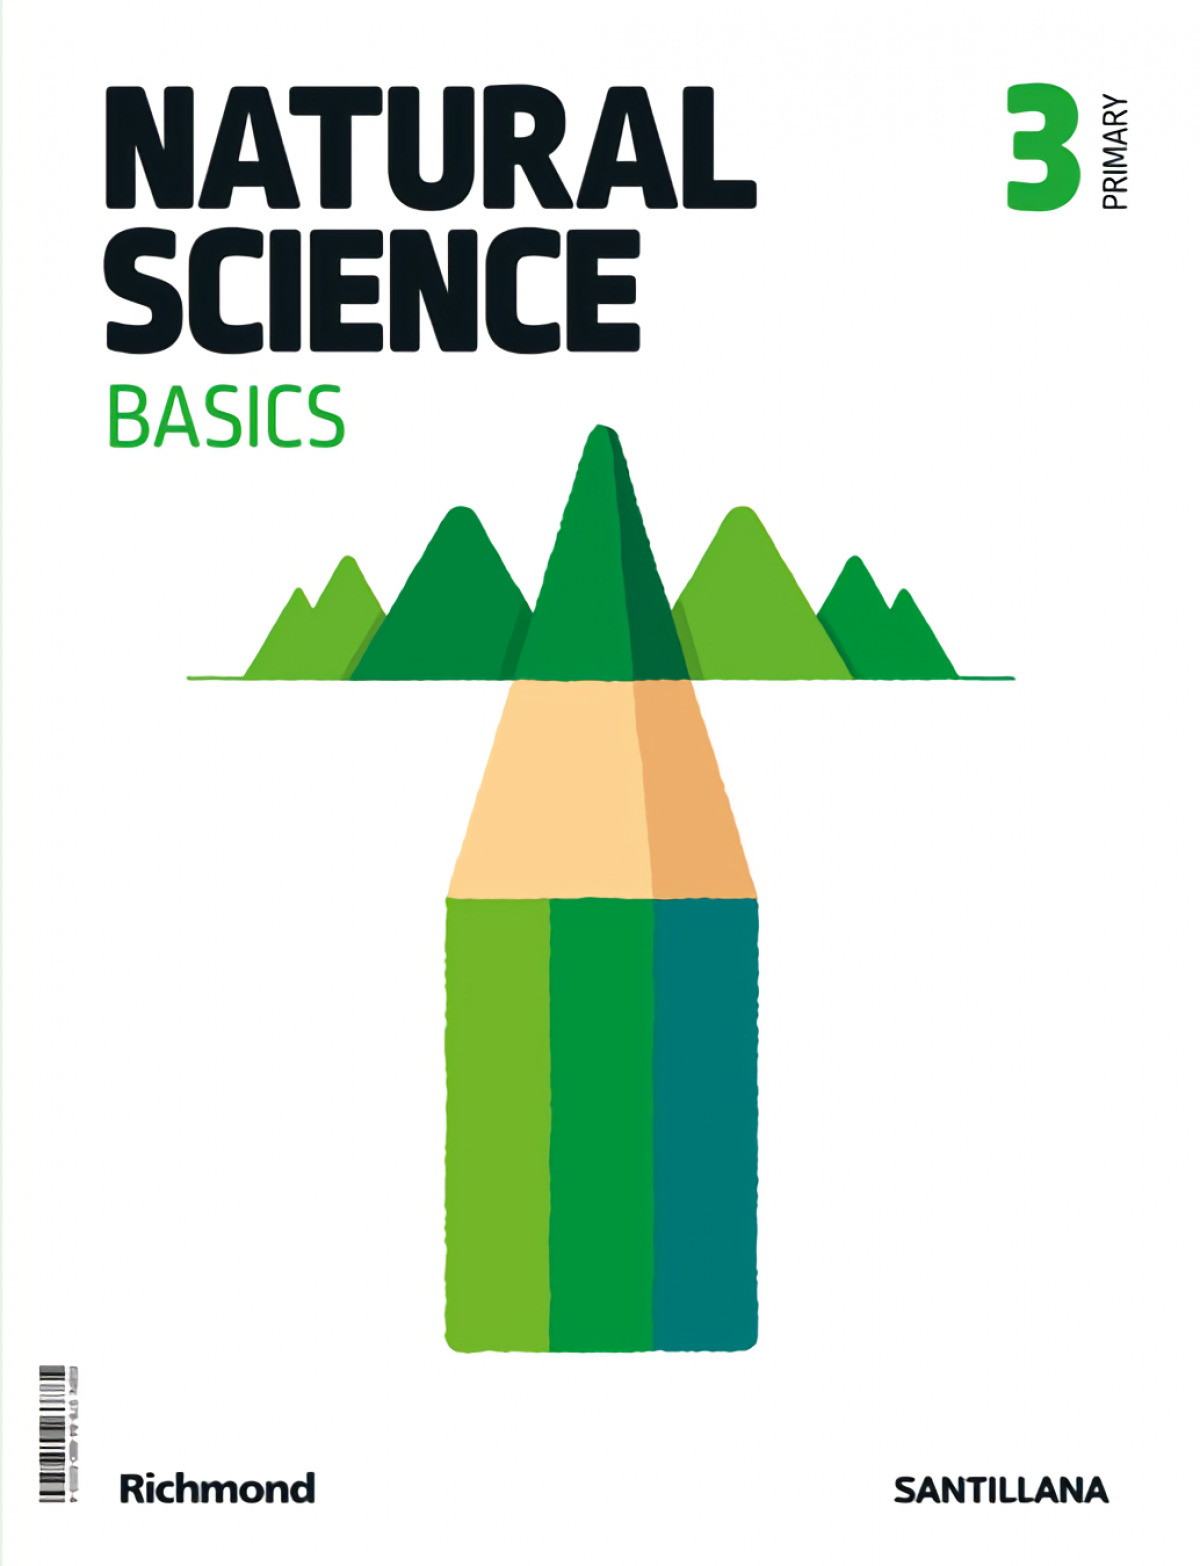 NATURAL SCIENCE BASICS 3 PRIMARY